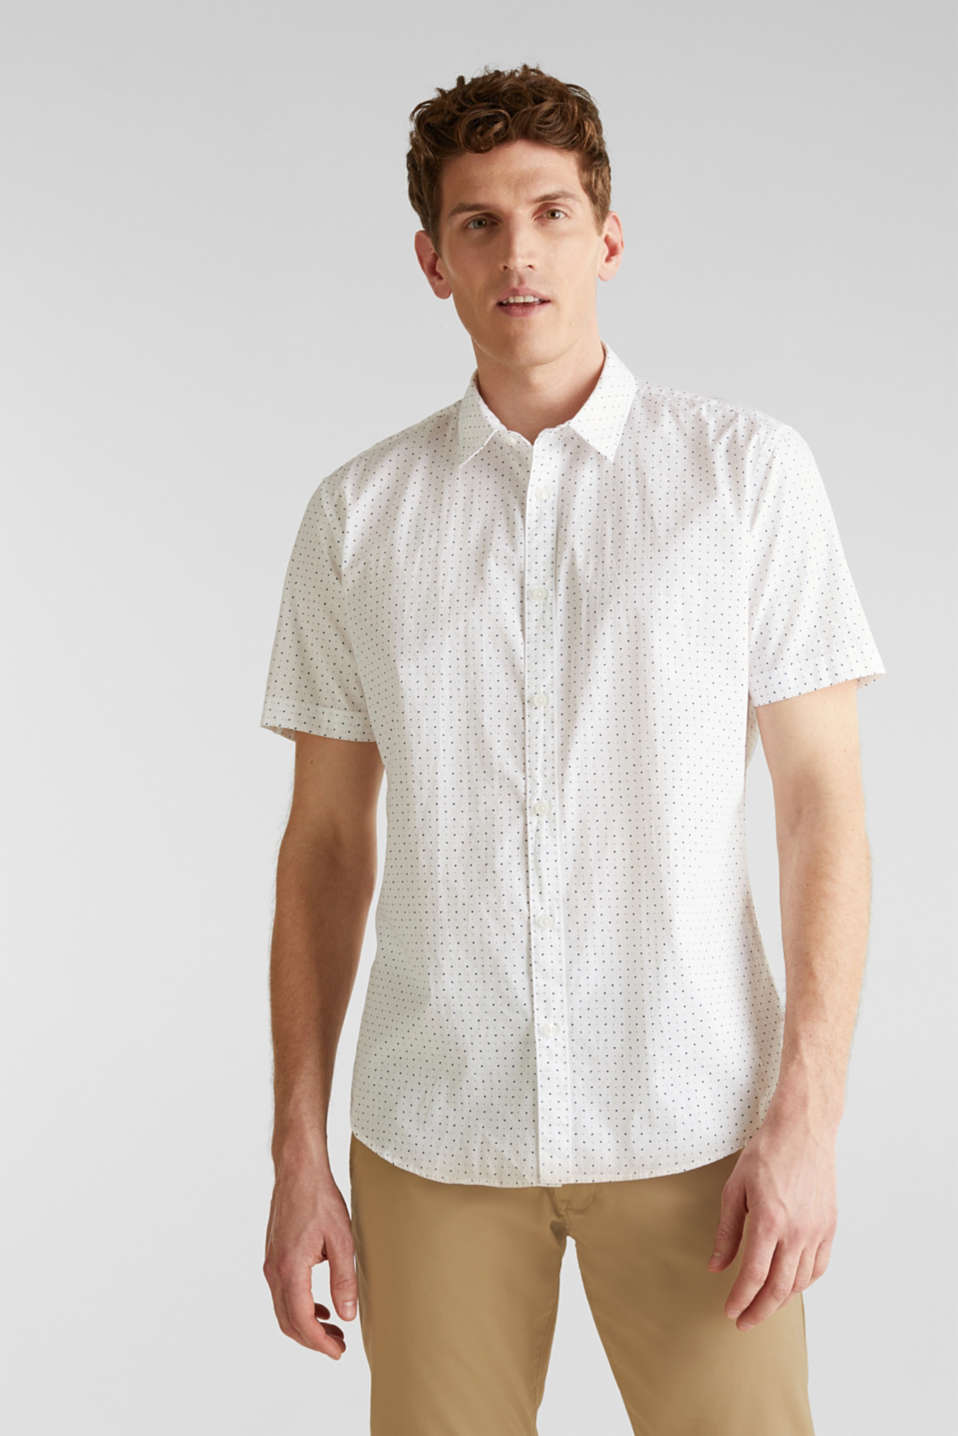 Esprit - Shirt with micro print, 100% organic cotton